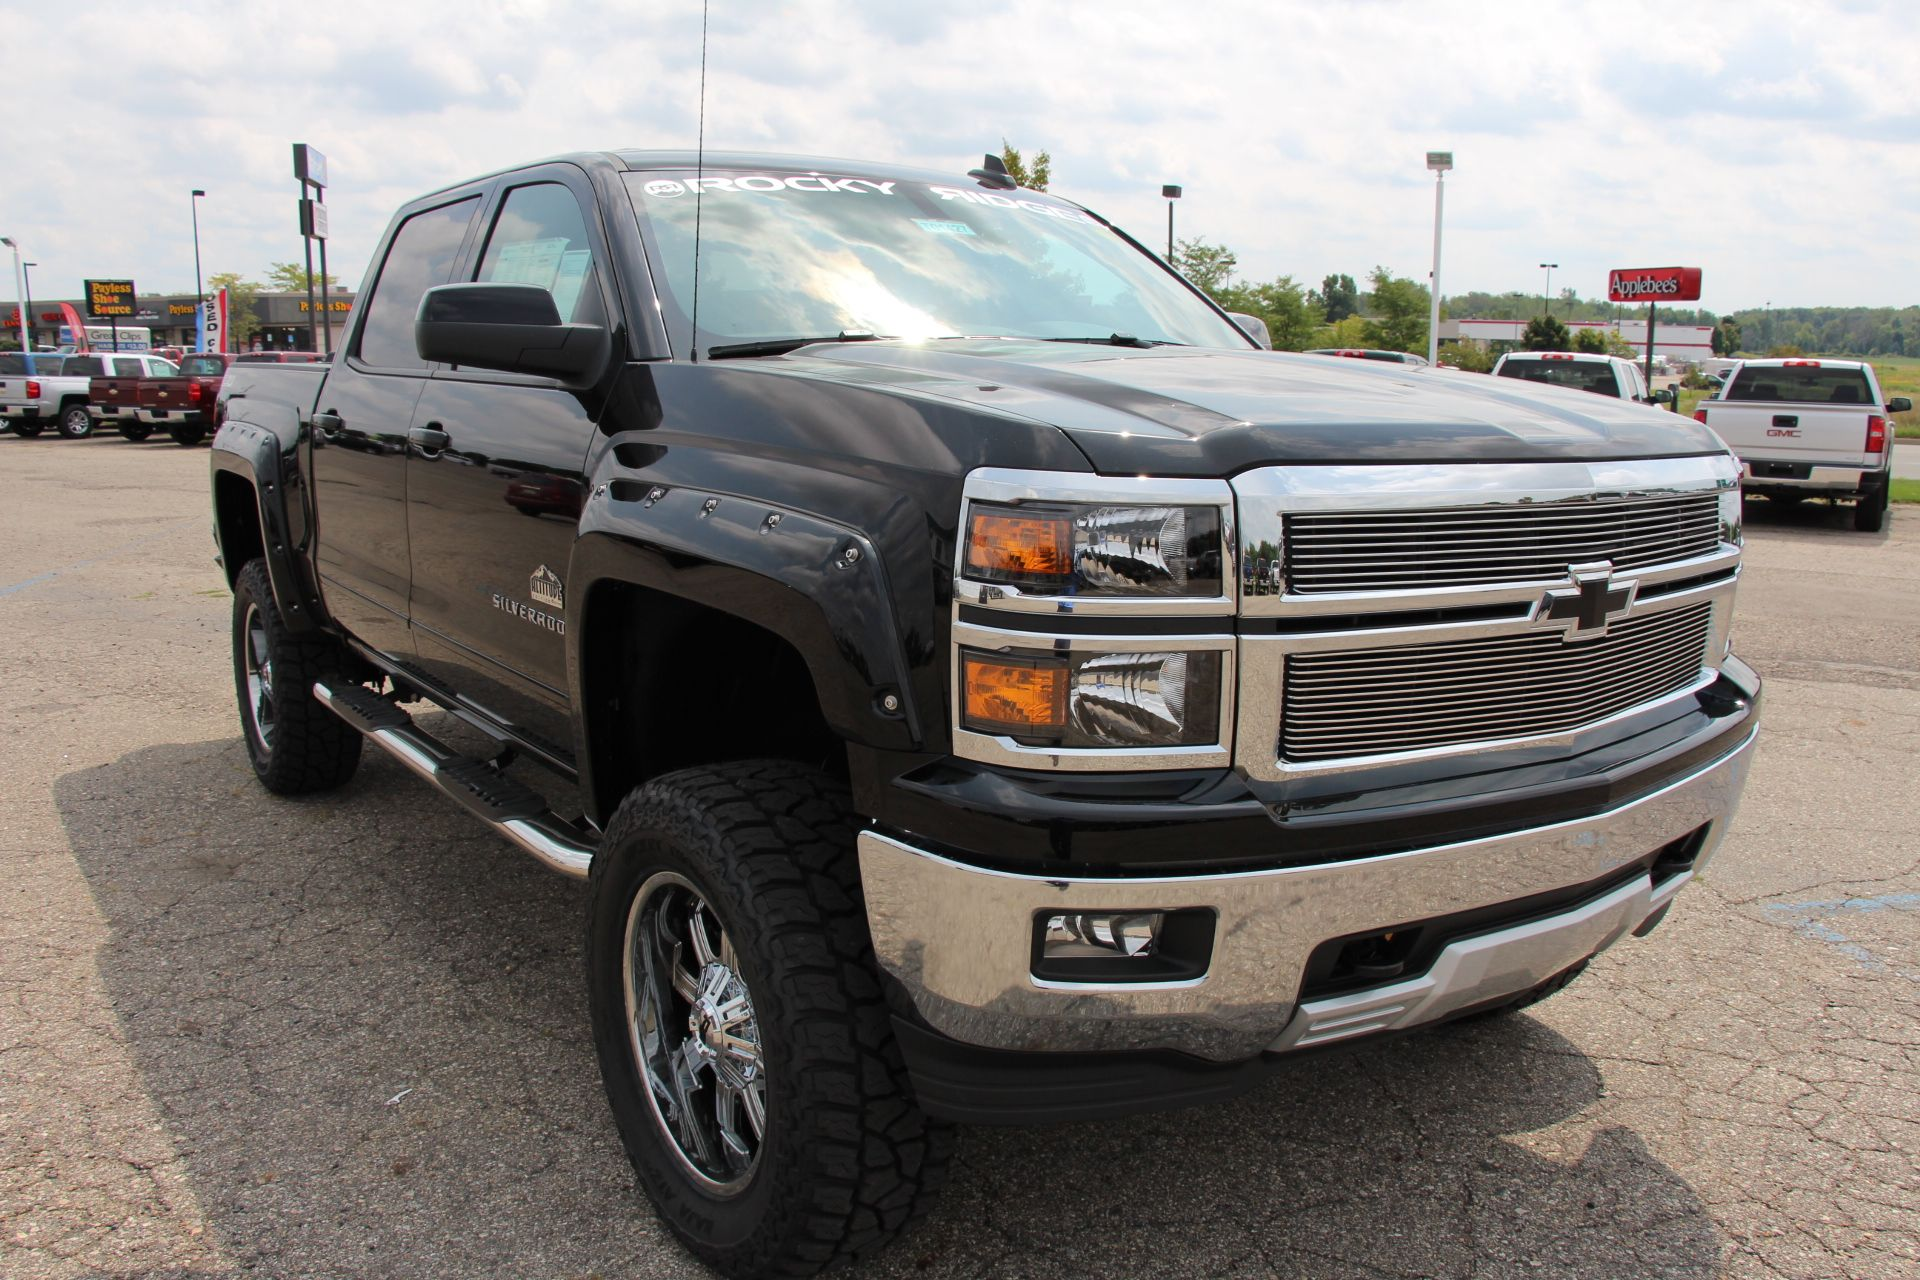 2015 gmc sierra 1500 slt rocky ridge alpine lifted truck lifted chevy gmc trucks for sale pinterest sierra 1500 lifted chevy and lifted chevy trucks